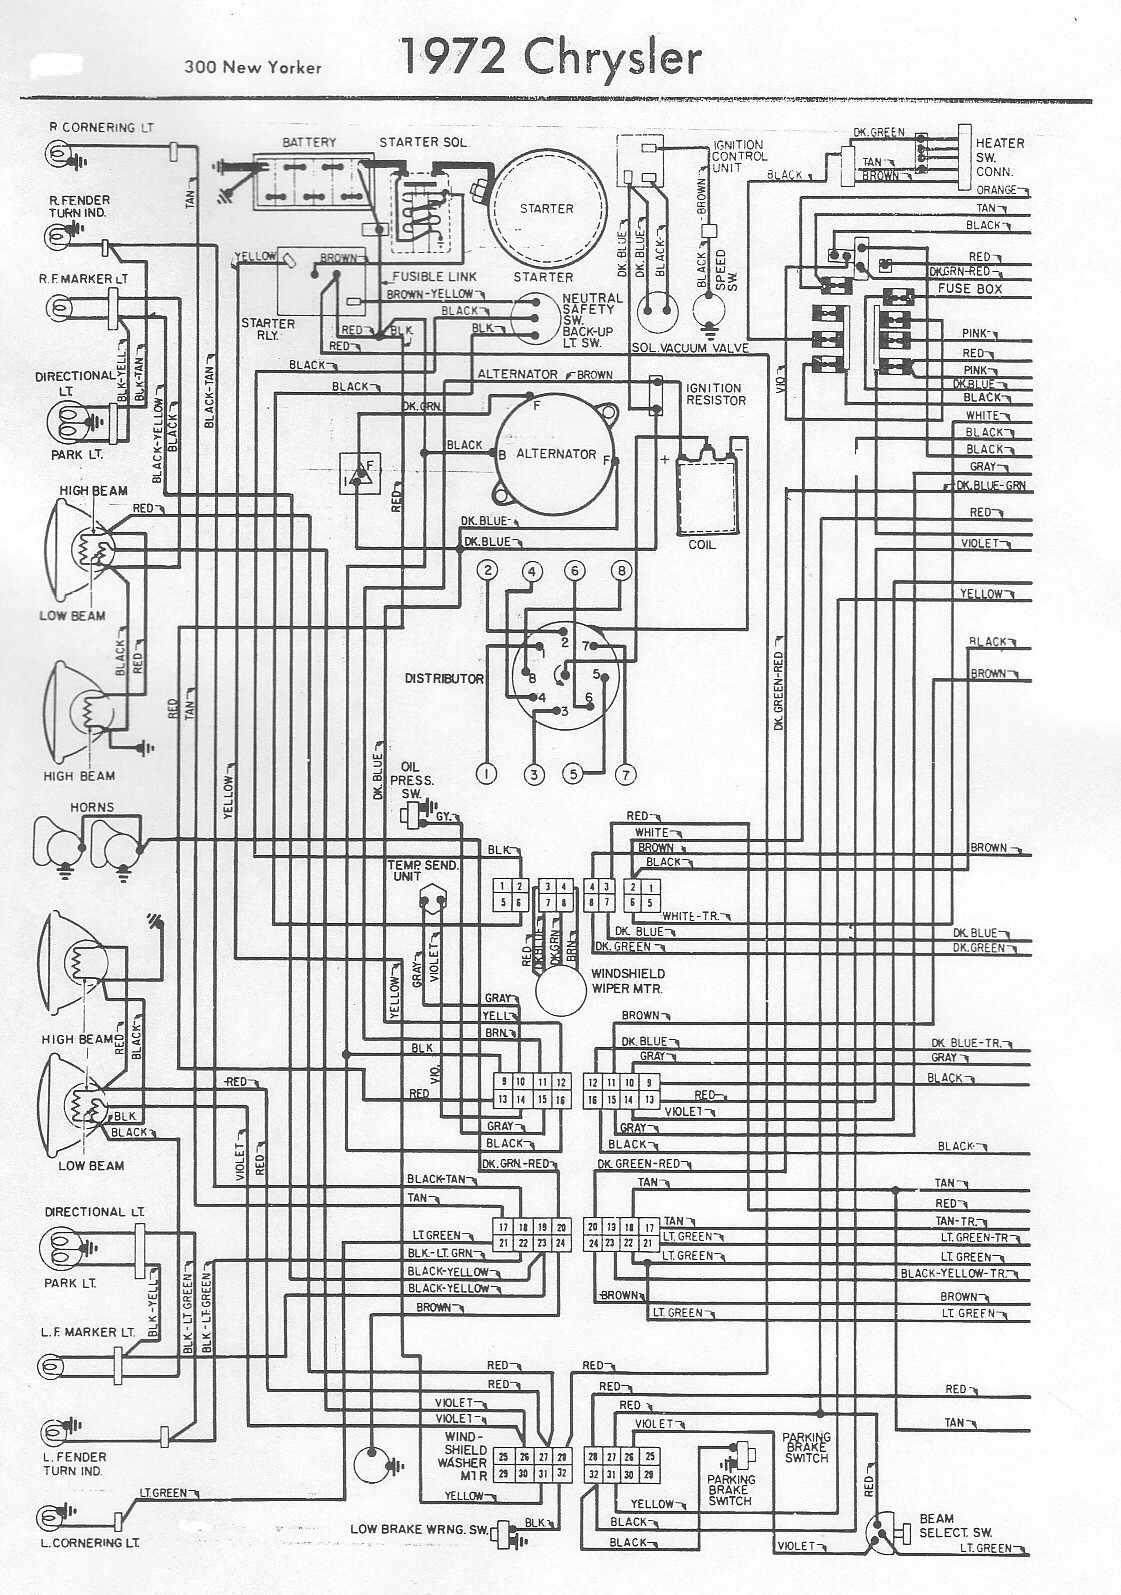 Plymouth Speakers Wiring Diagram Trusted Diagrams 2002 Chrysler Voyager Engine 1966 300 Electrical Work Rh Aglabs Co Chevy 350 Starter Hobart Dishwasher